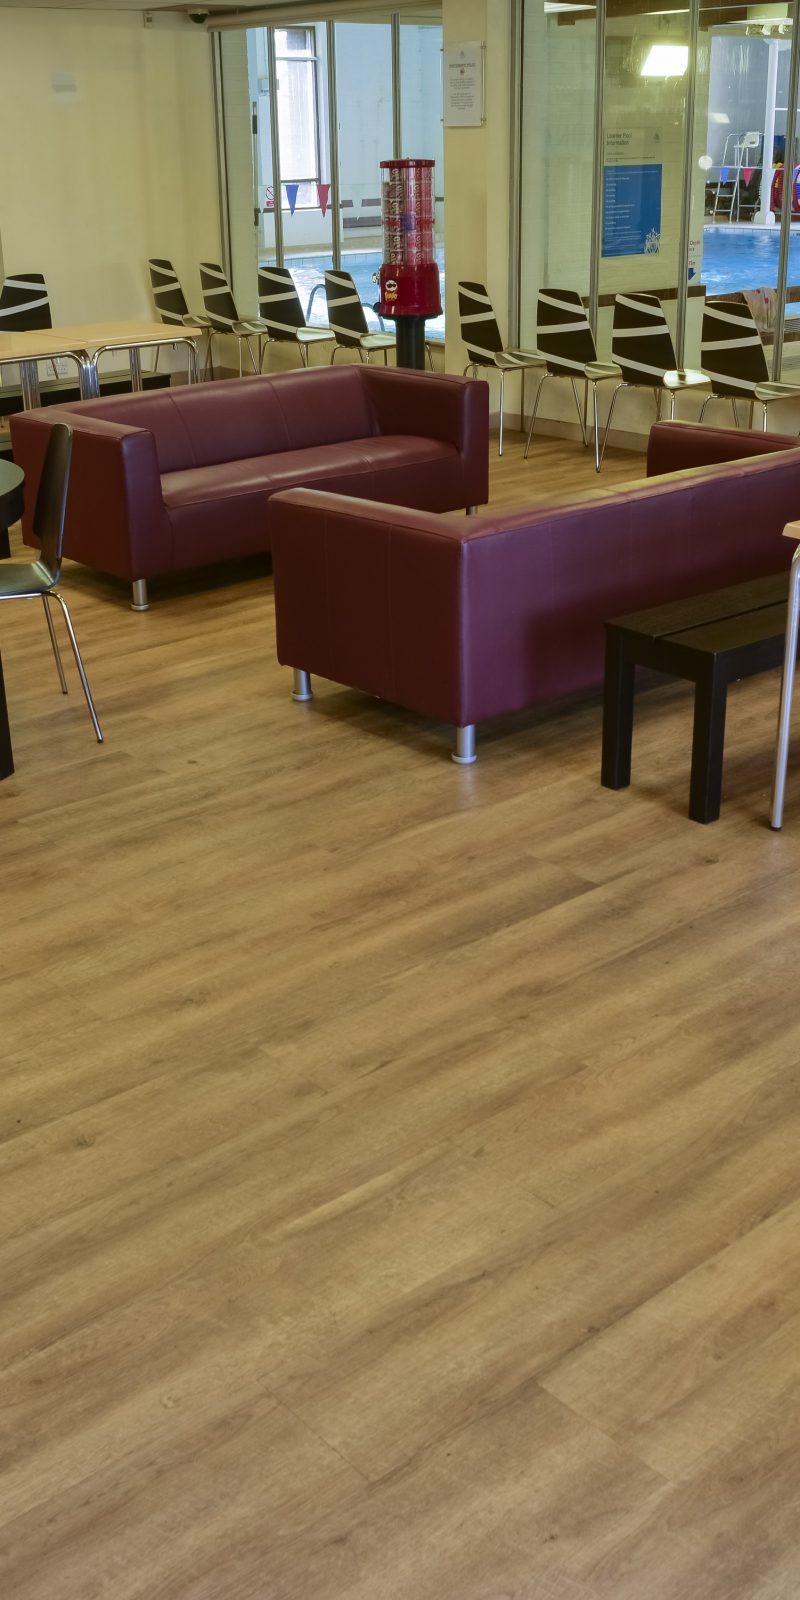 Tarkett Lvt Installation Goes Swimmingly At Fitness Centre Specifier Review